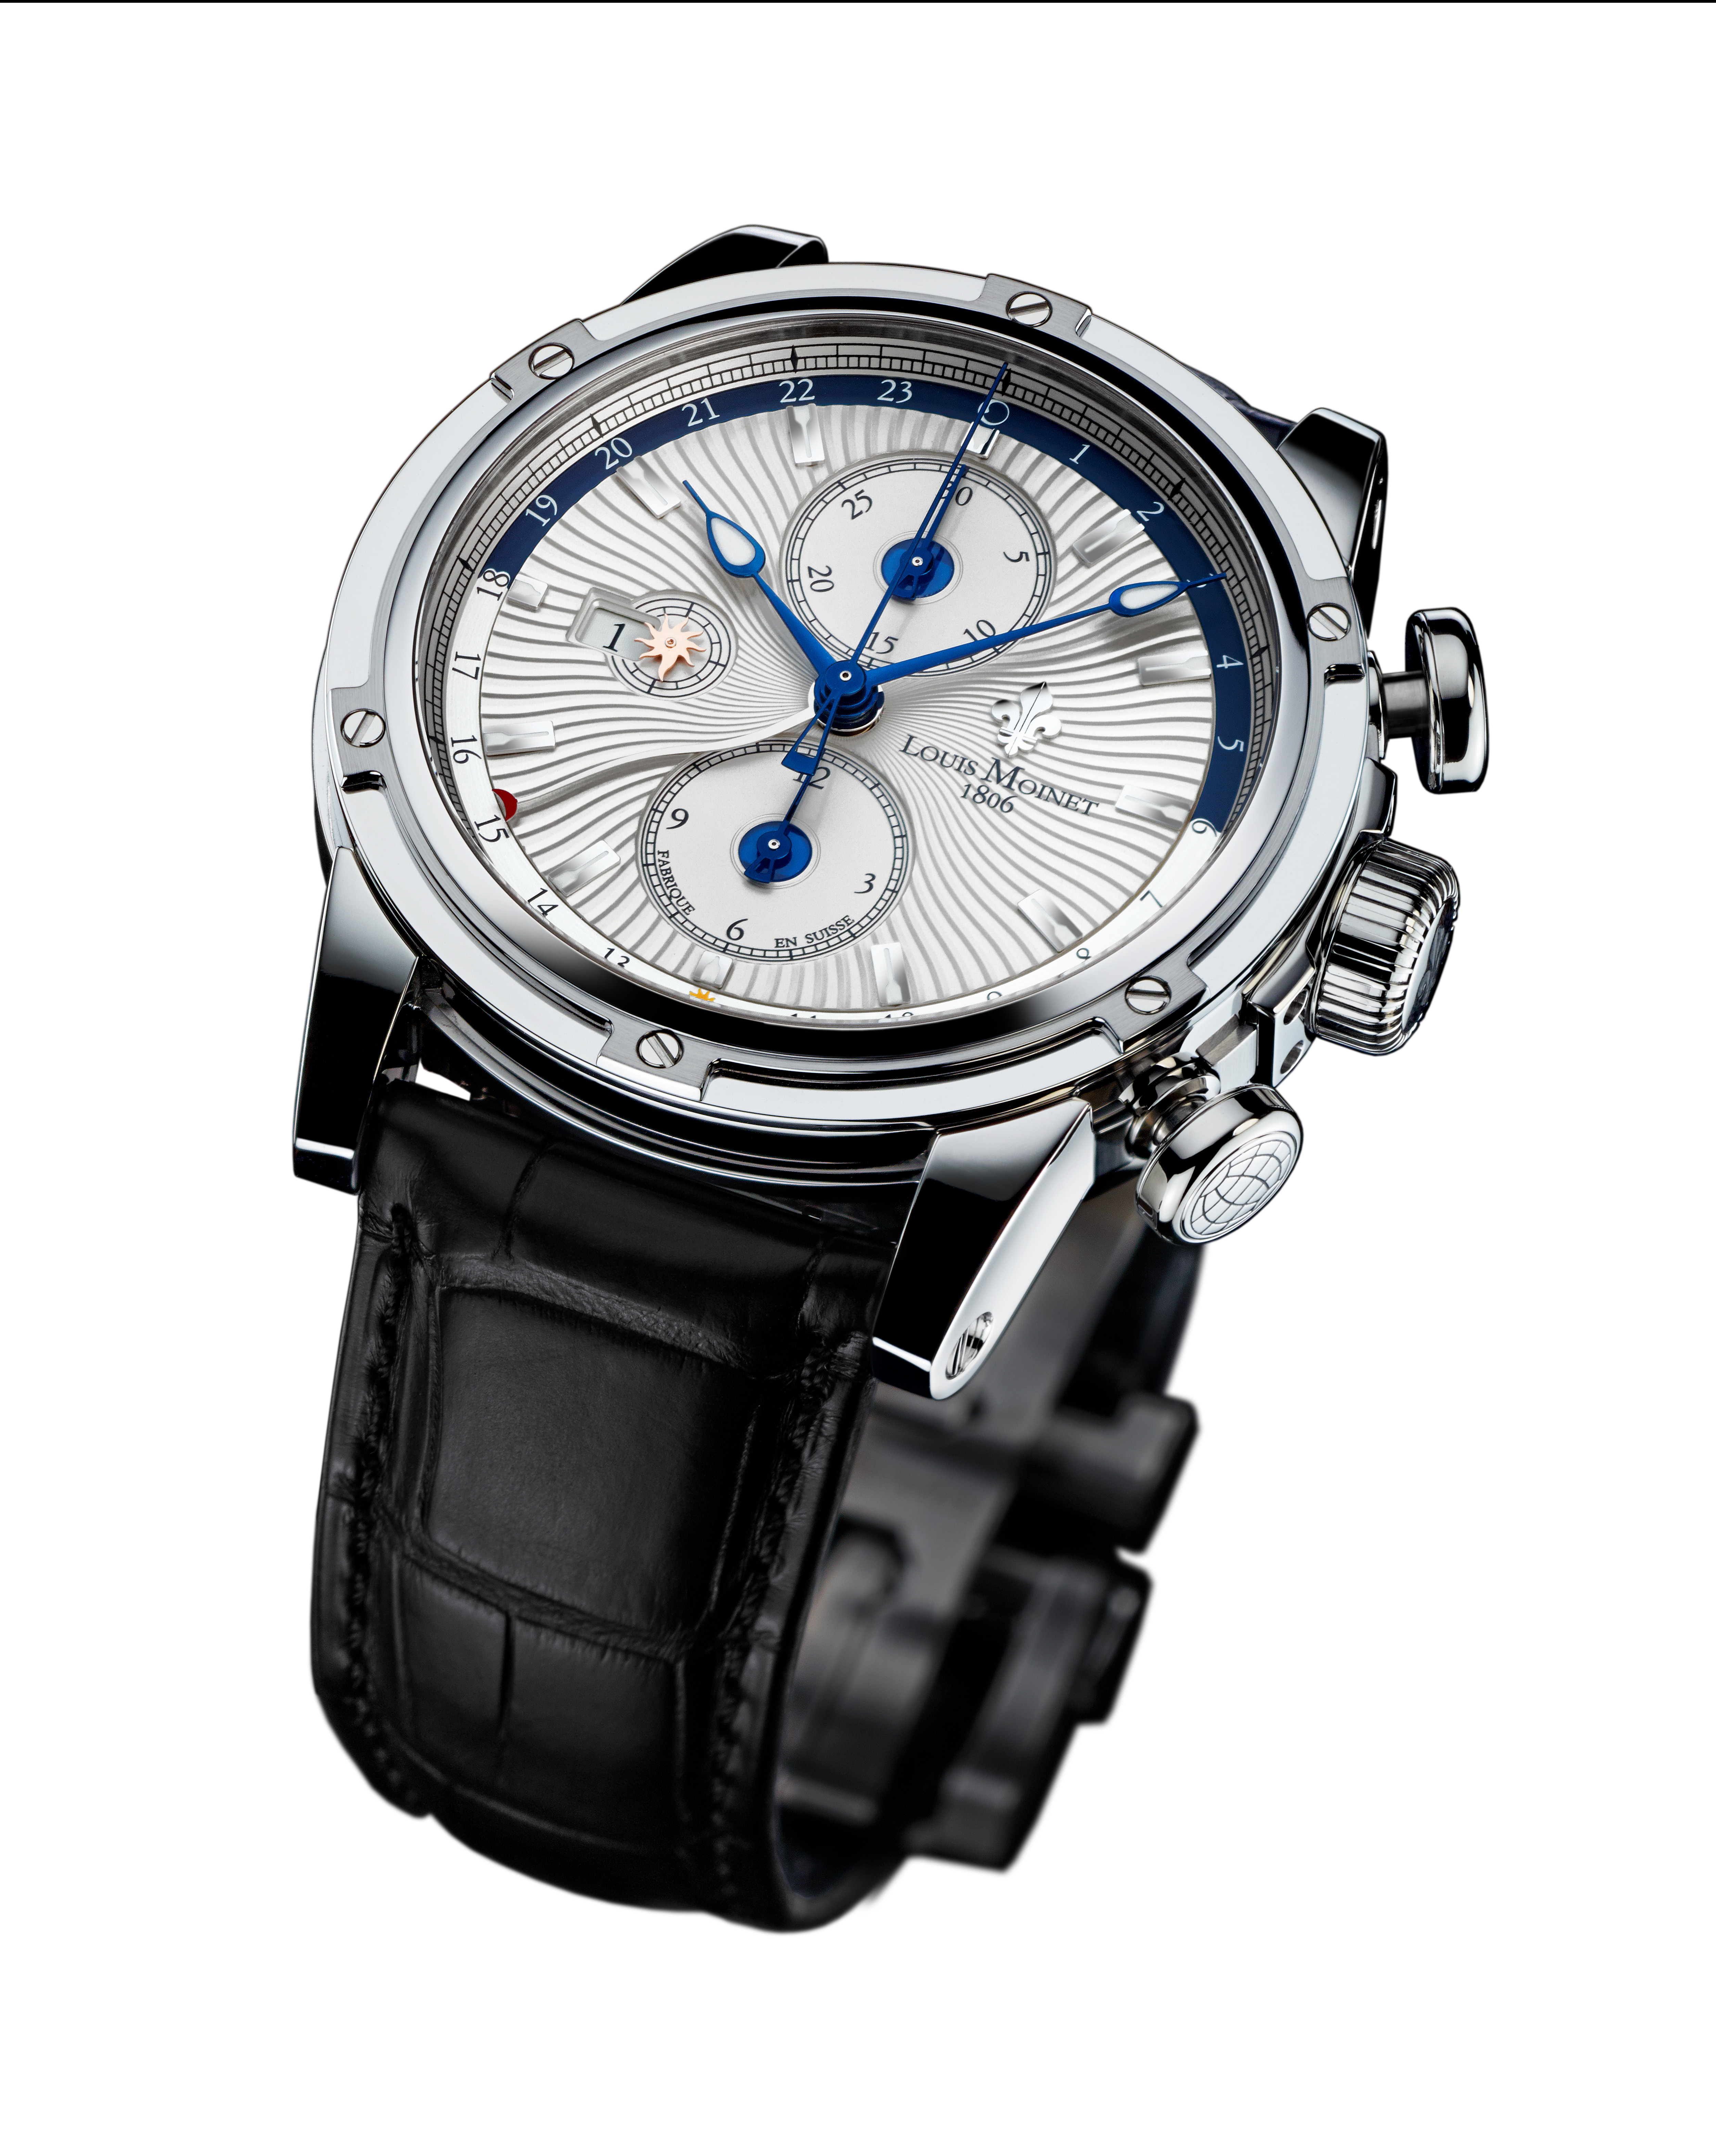 Louis moinet geograph lm swiss luxury watches for Louis moinet watch